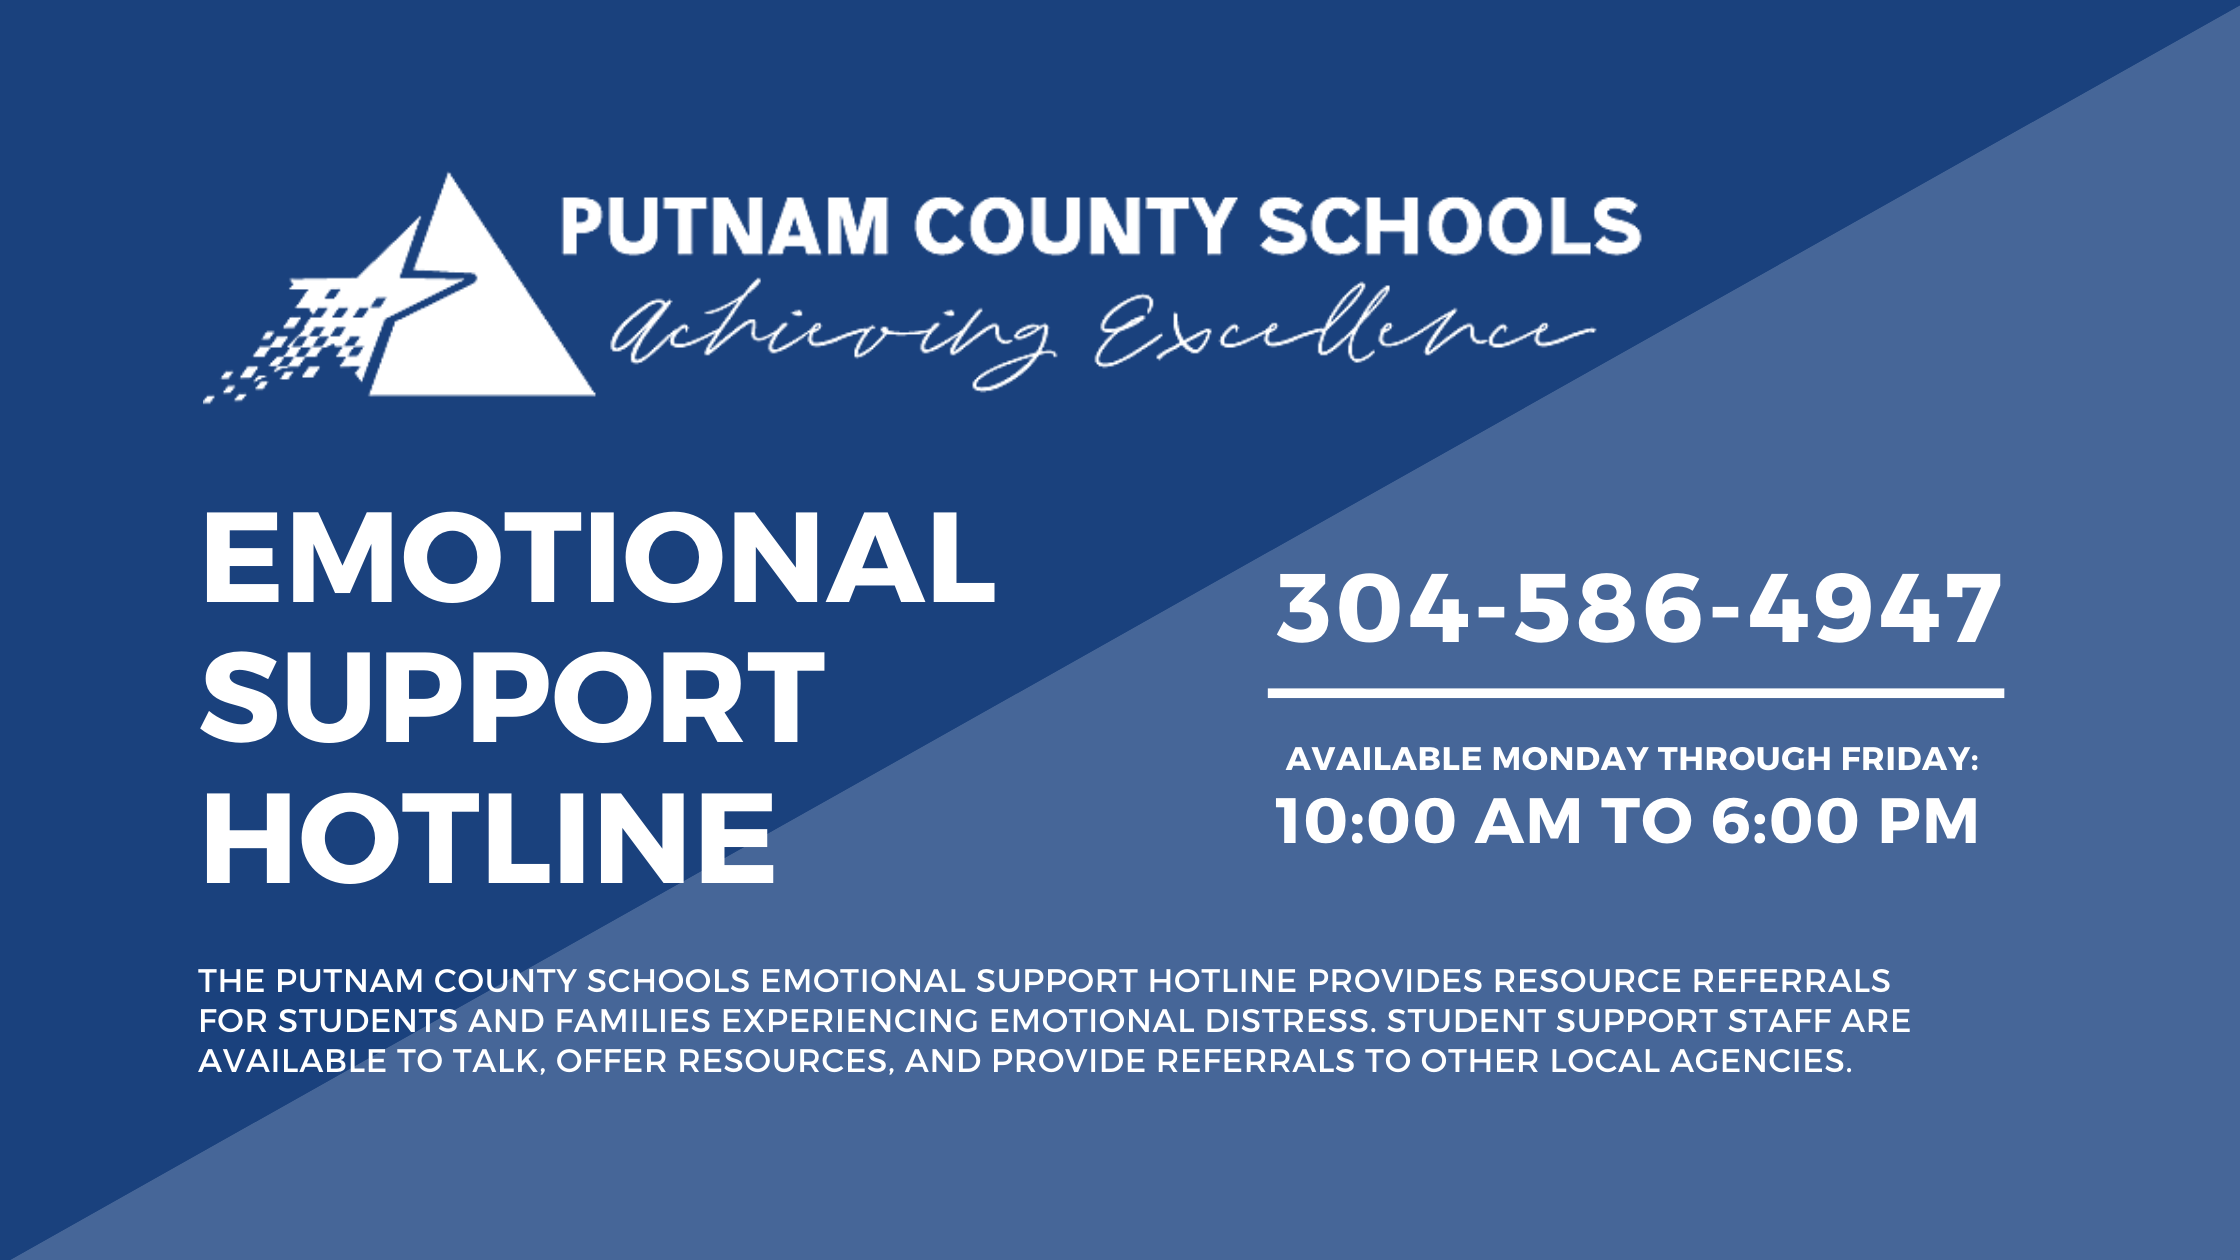 PCS Emotional Support Hotline